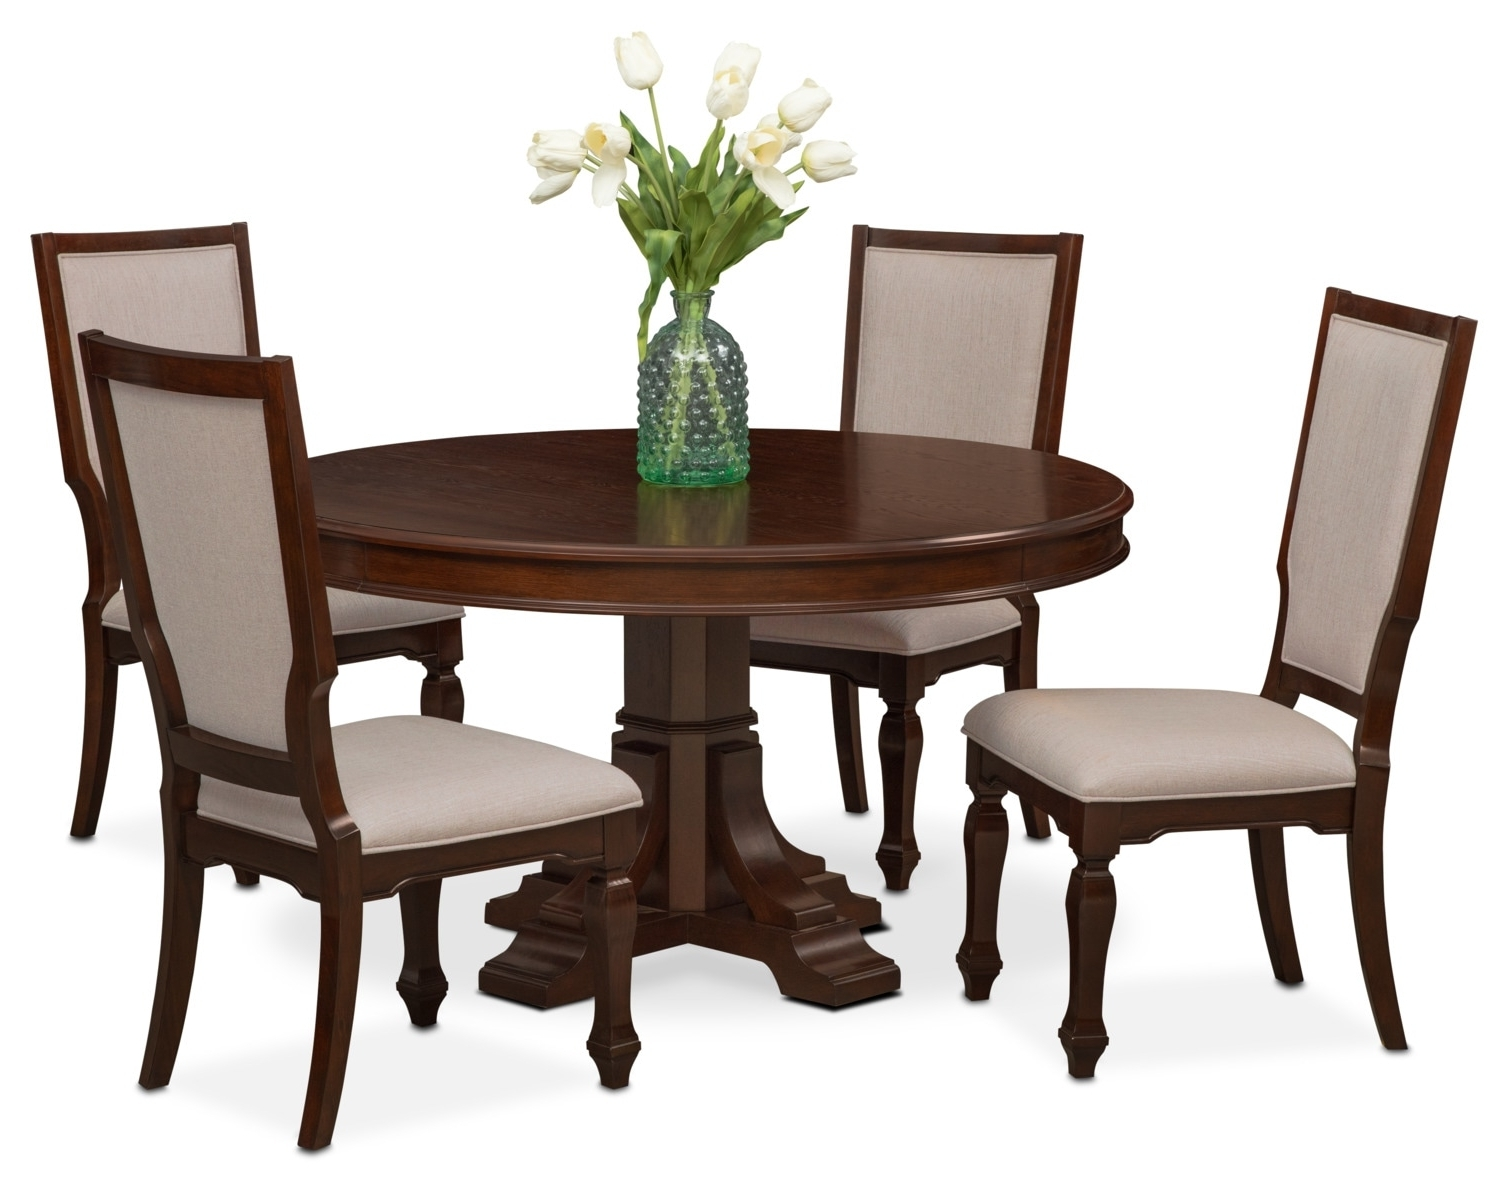 Vienna Round Dining Table And 4 Upholstered Side Chairs – Merlot For Preferred Vienna Dining Tables (View 25 of 25)